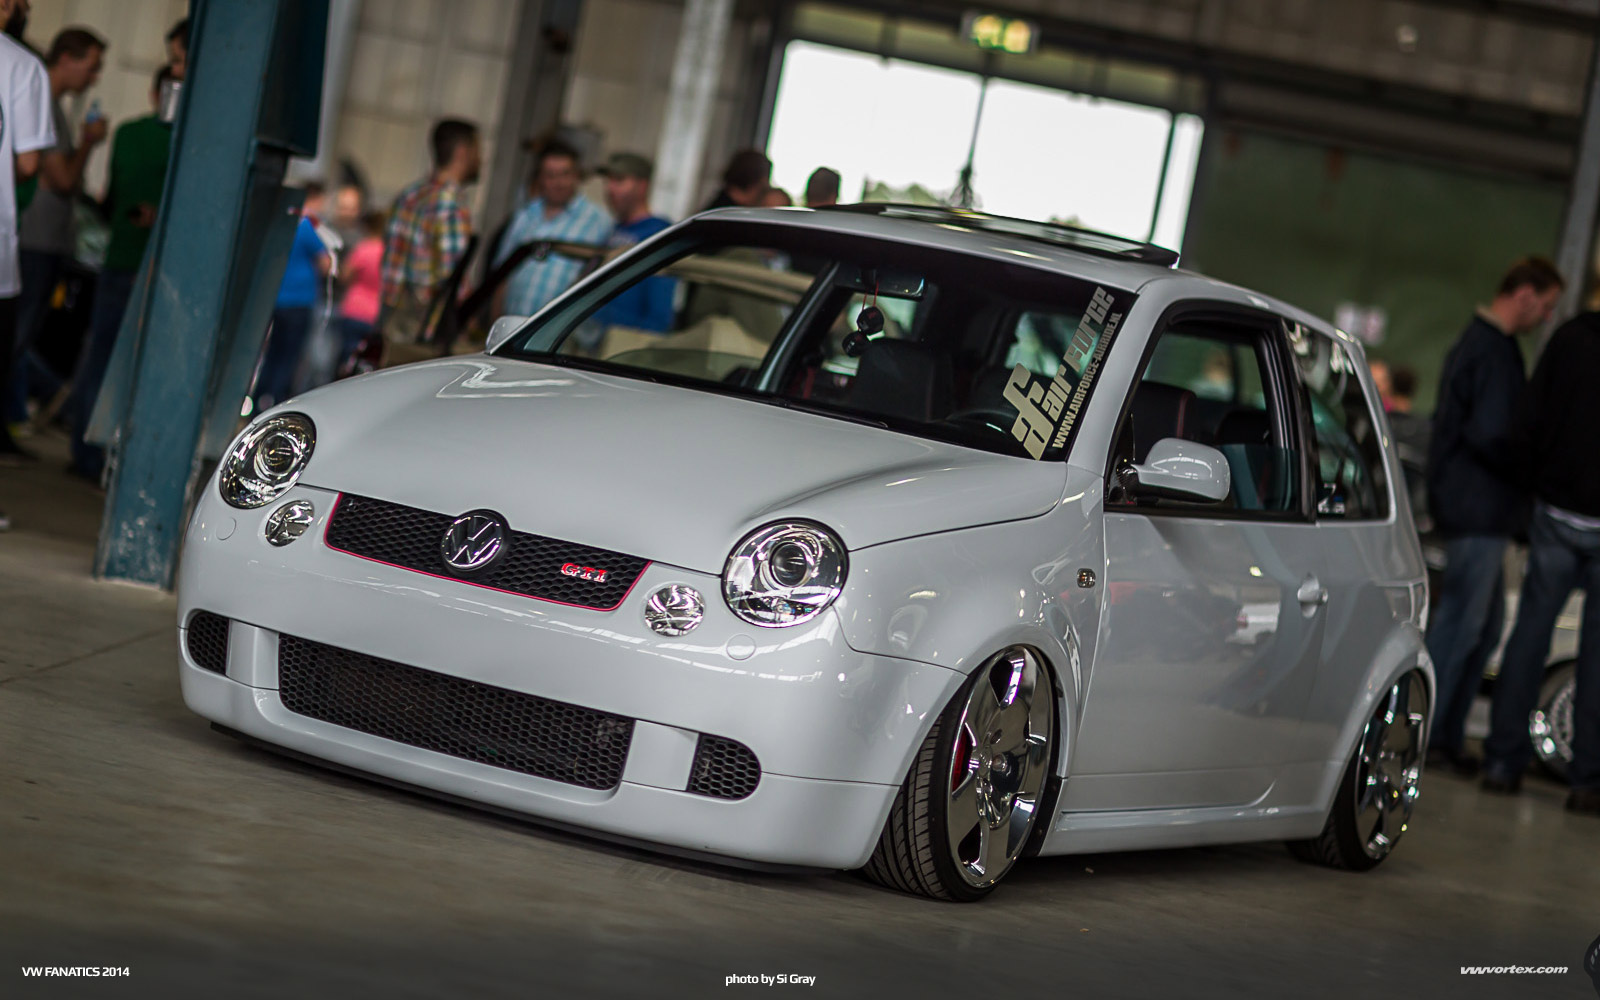 VWFanatics-2014-Si-Gray-497